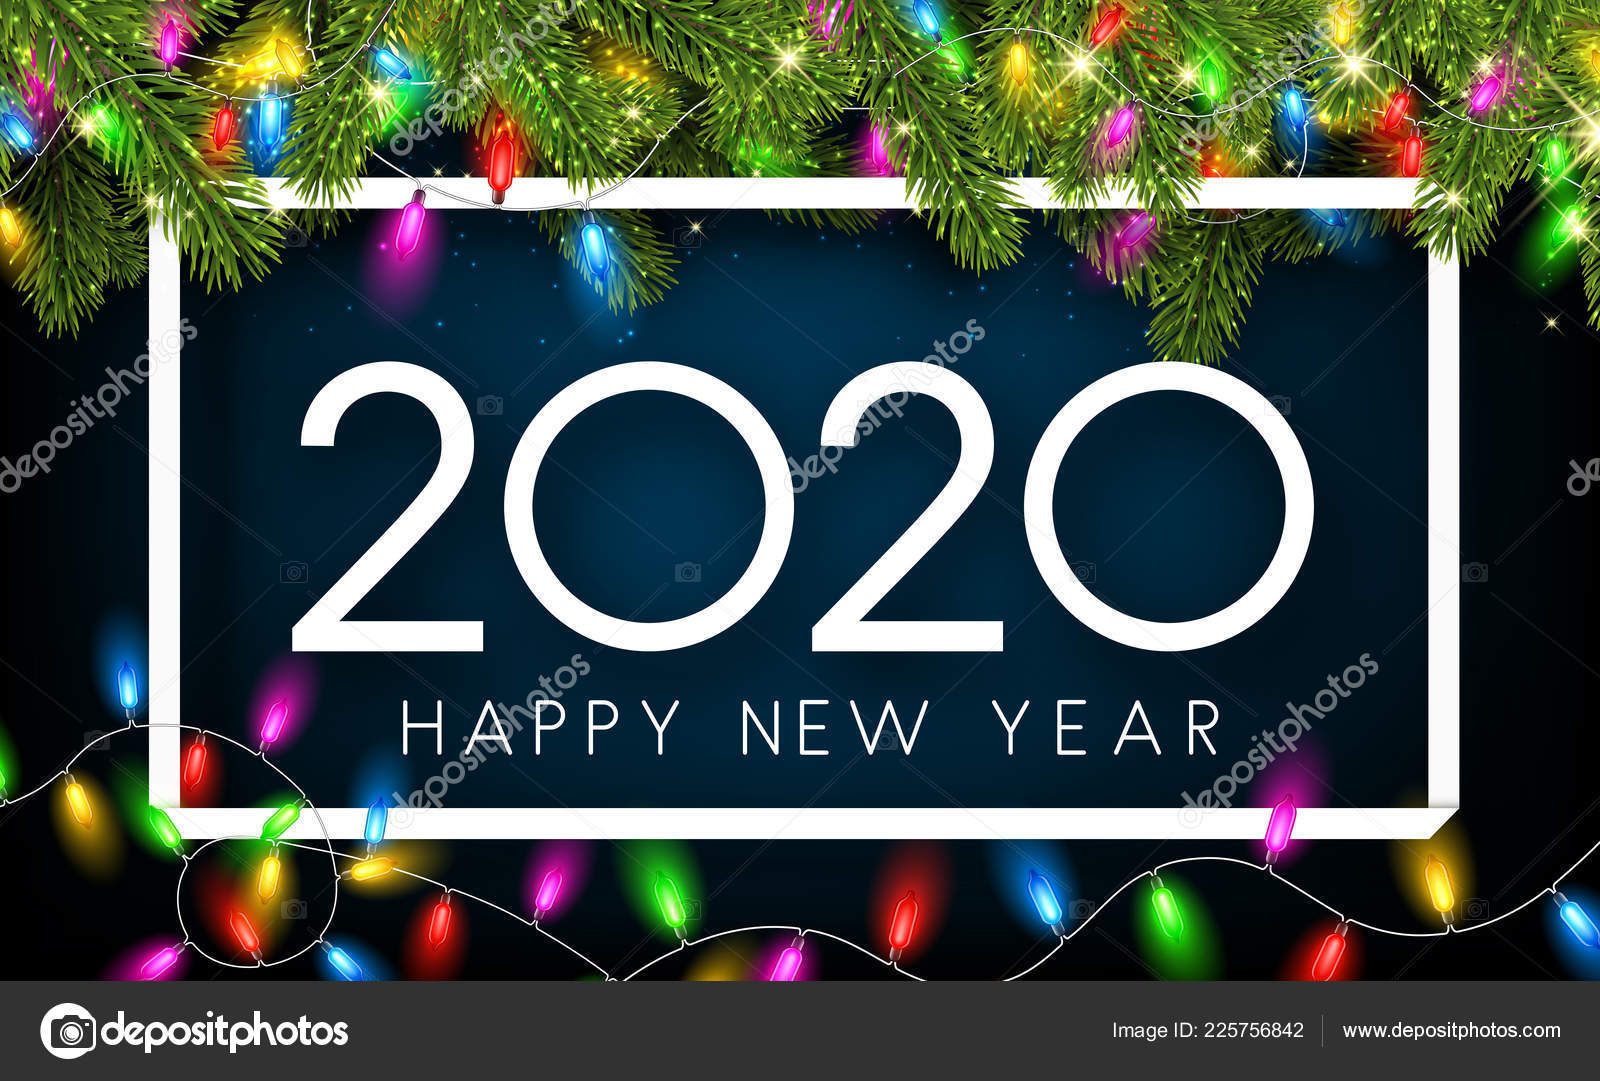 2020 happy new year photo frame